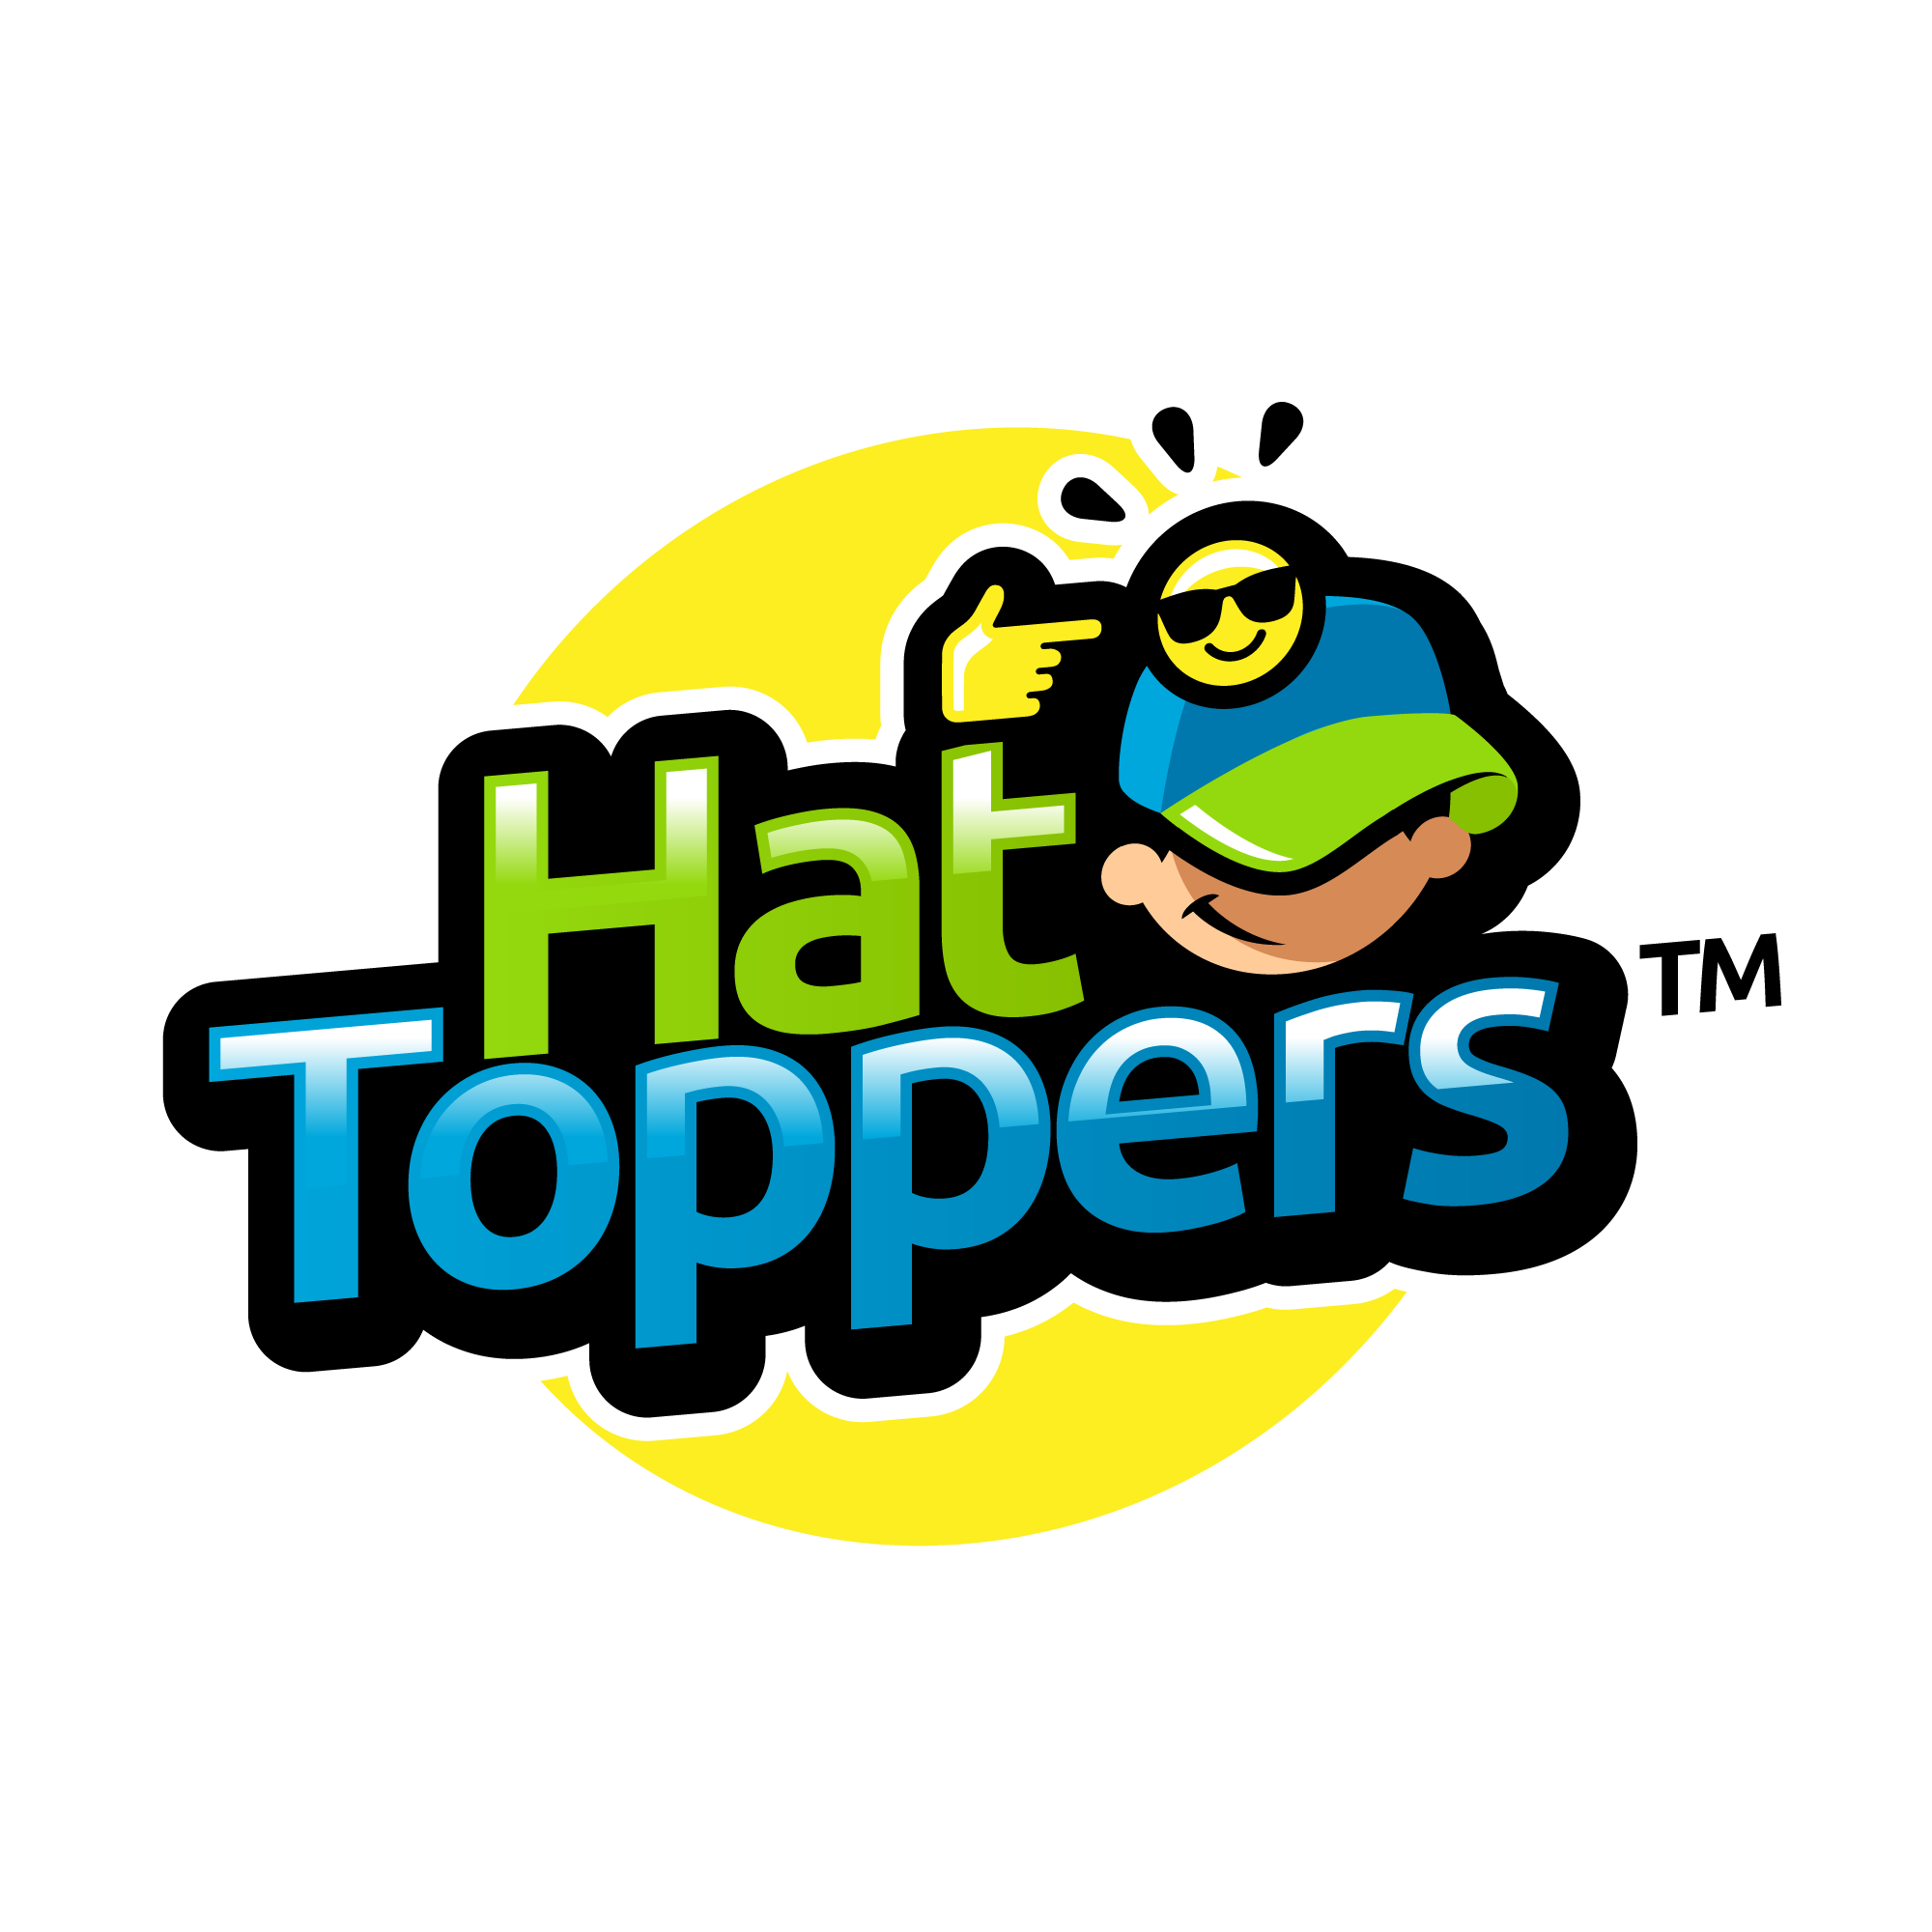 Design an eye-catching logo for Hat Toppers